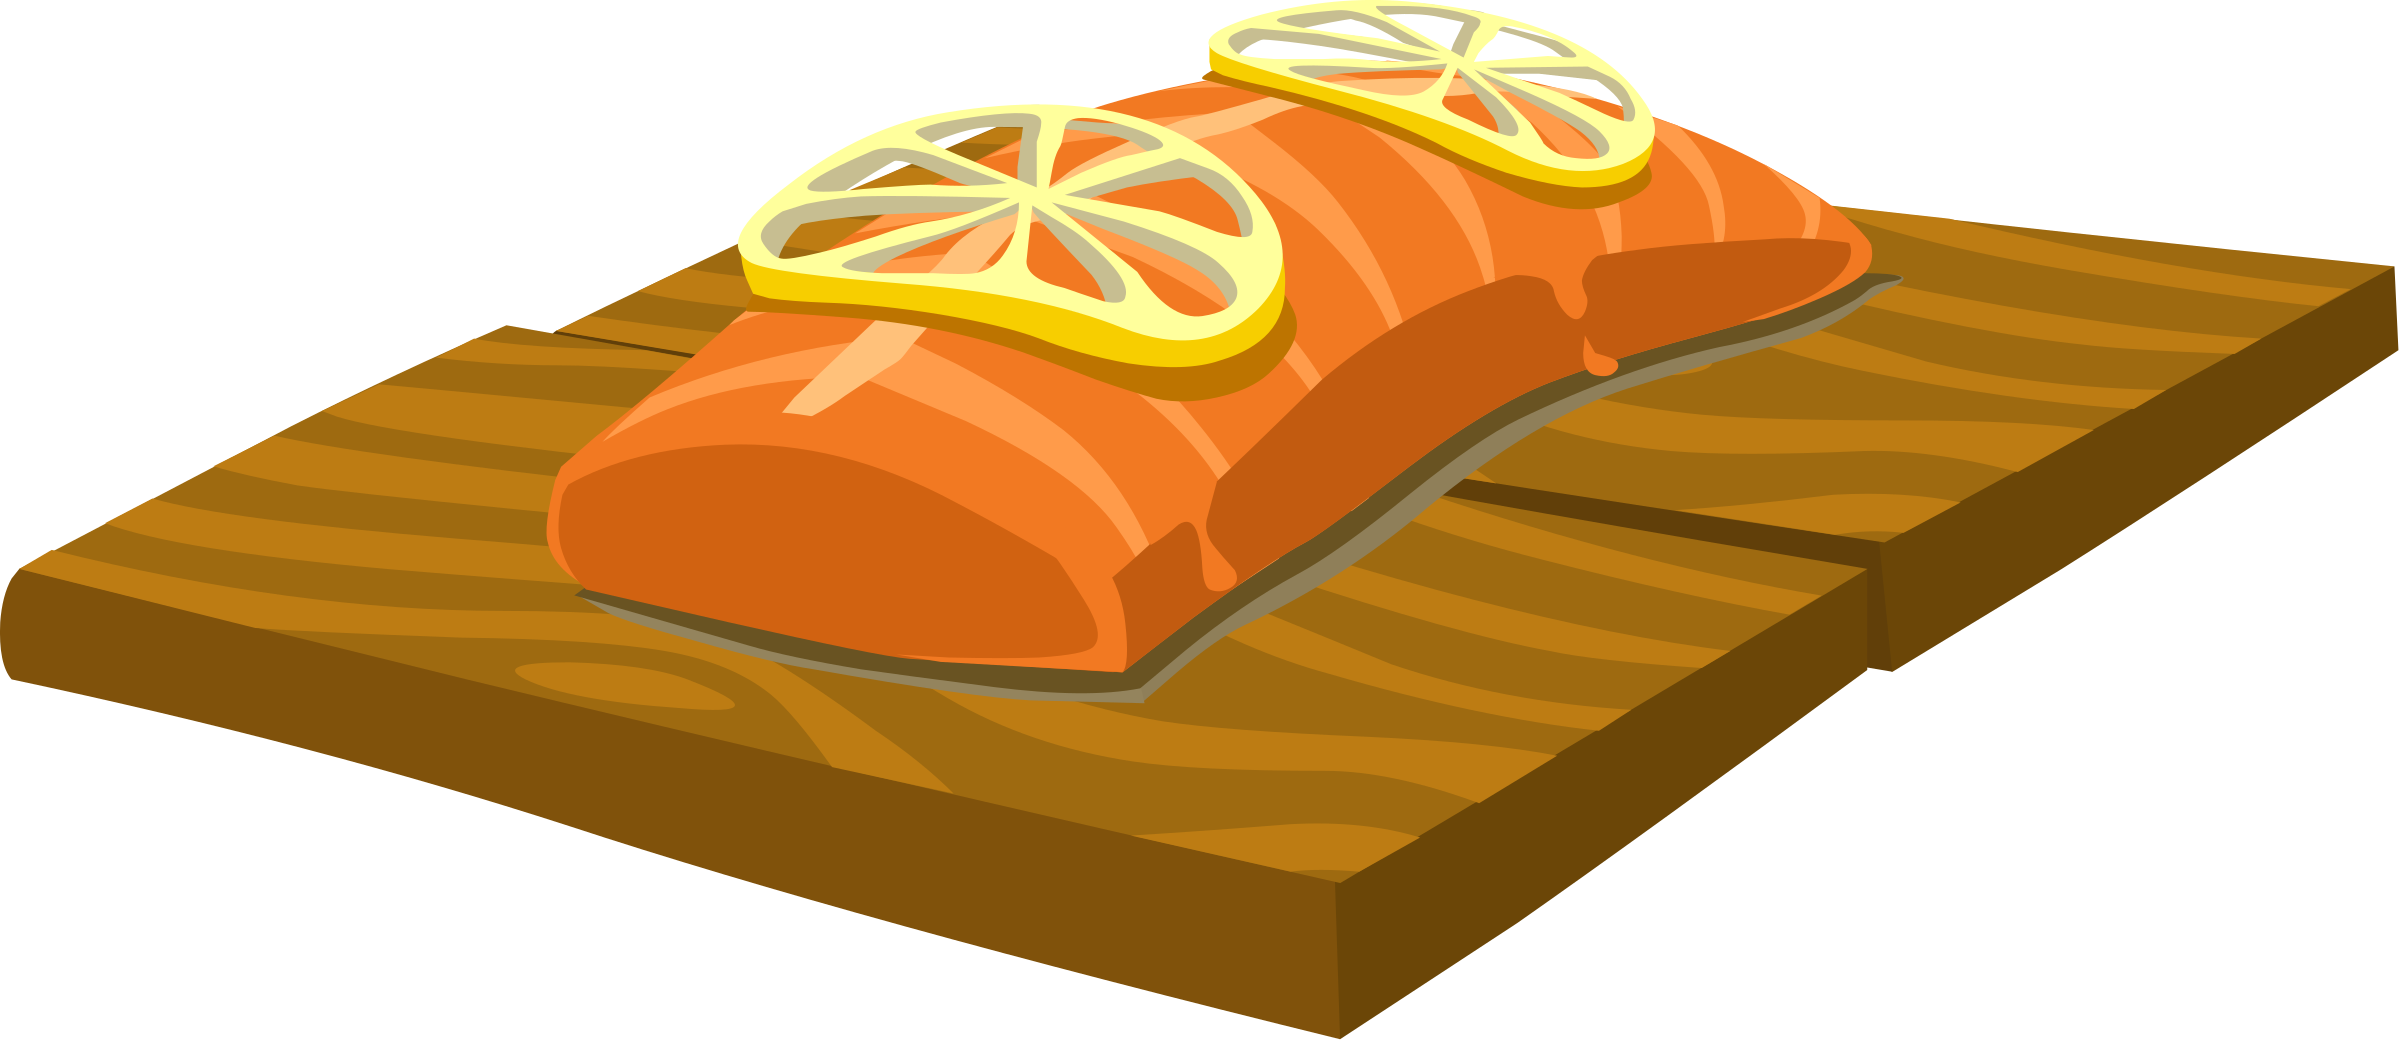 Salmon clipart blue food. Cedar plank icons png